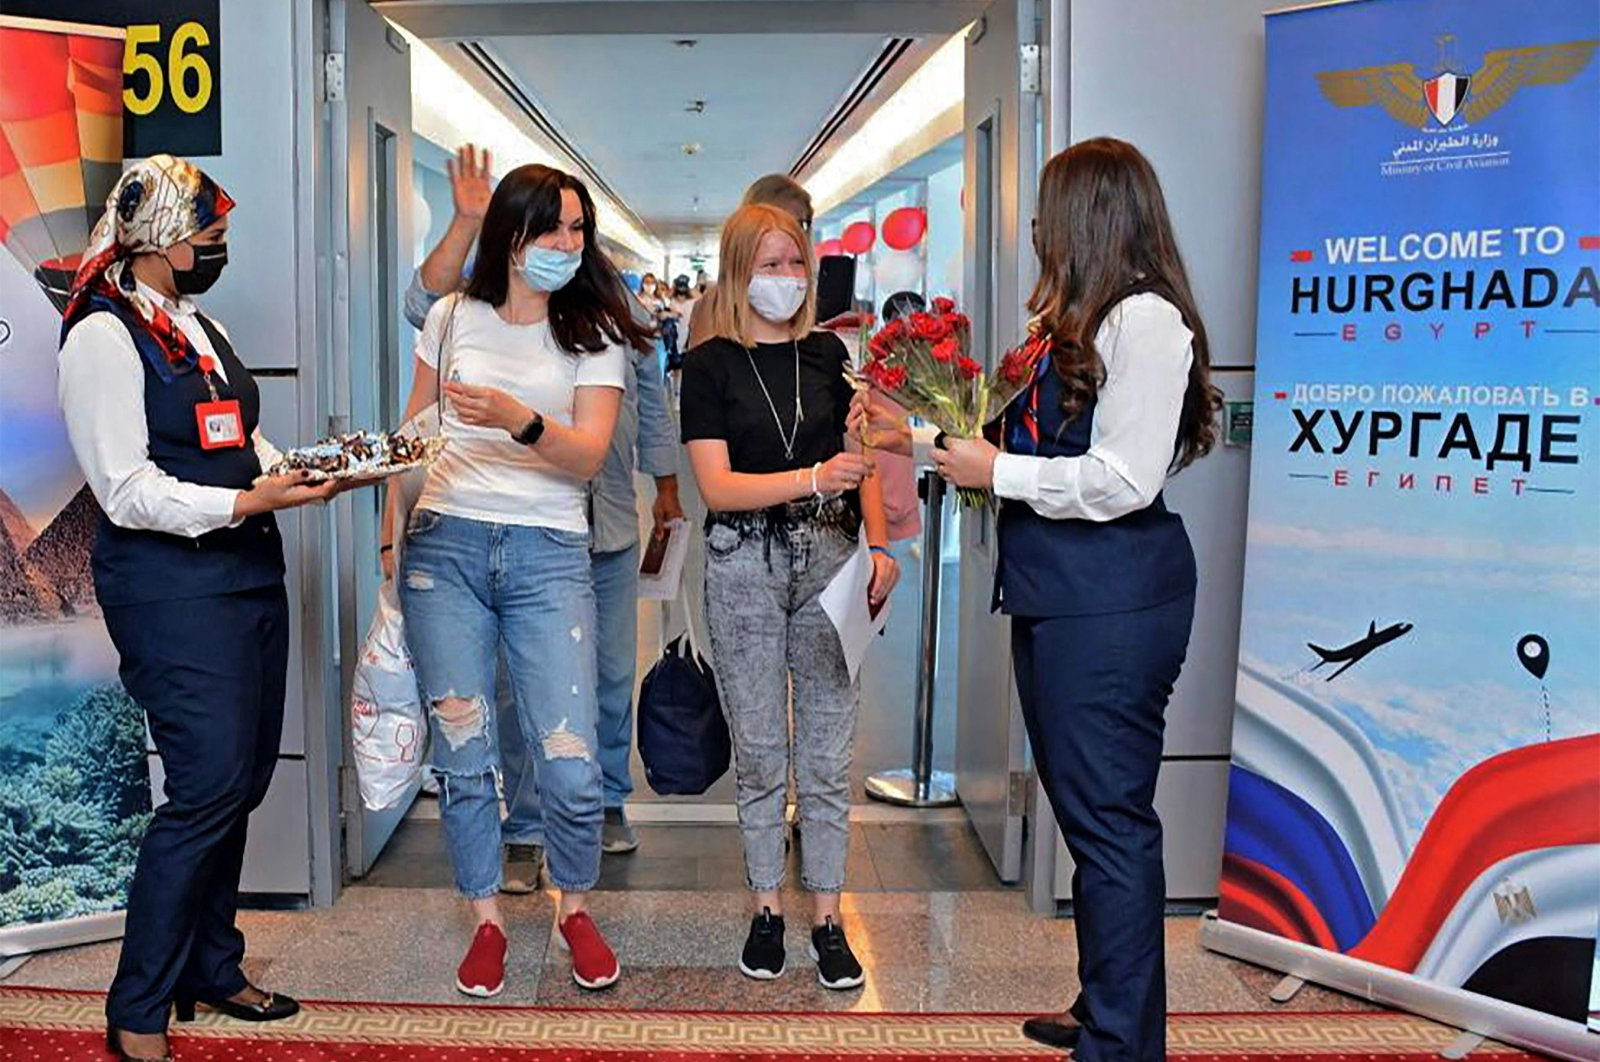 Visitors from Russia arrive in the Red Sea resort of Hurghada, Egypt, Aug. 9, 2021. (AFP Photo/Egyptian Ministry of Tourism)